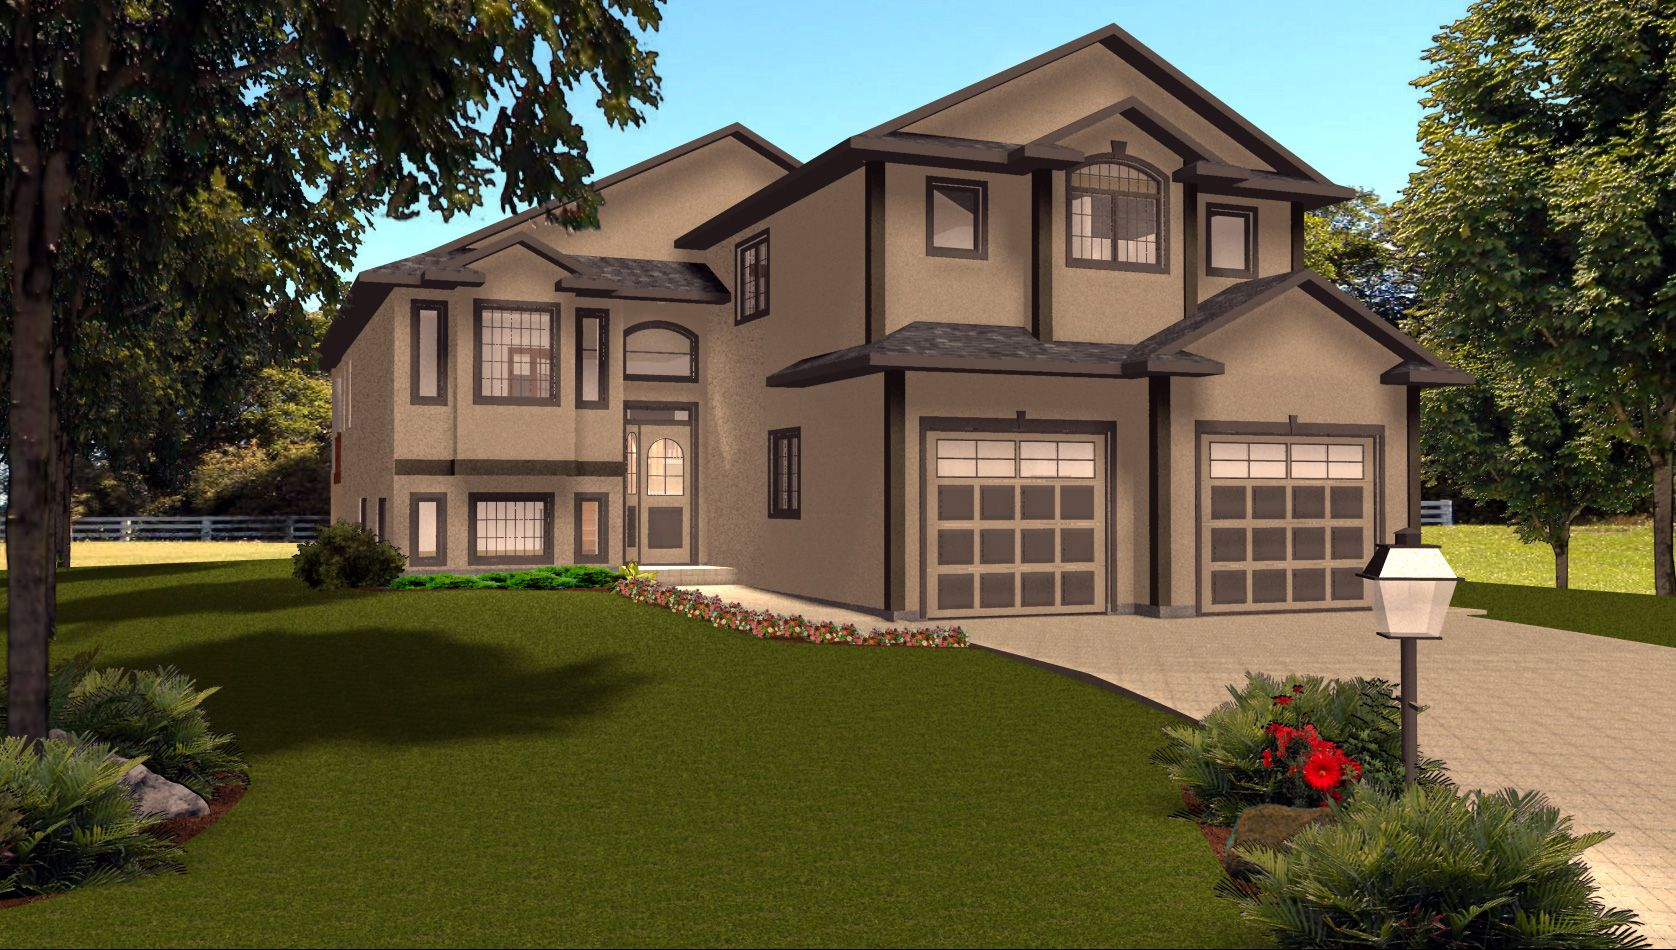 Charming Bi Level House Plans With Attached Garage #4: Bi-Level Garage Additions | Modified Bi Level With 3 Car Garage This Home  Is Shown With Clean Roof ... | Soiree Flowers | Pinterest | Car Garage,  Split ...